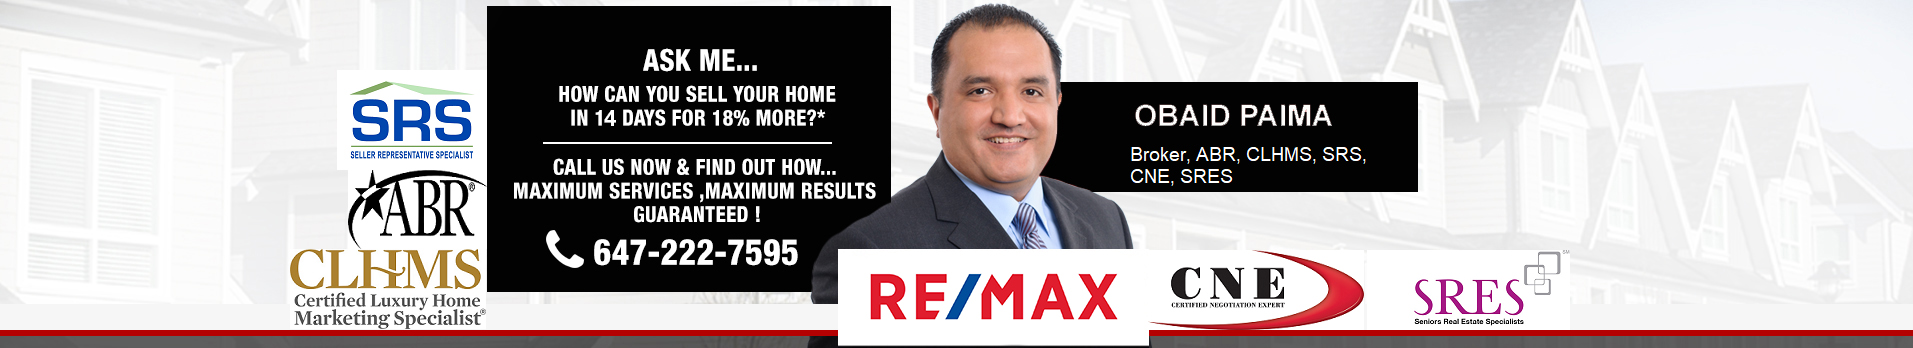 98 Robarts Dr,  (MLS® #: W4914714) -  See this detached house for sale in Dempsey, Milton